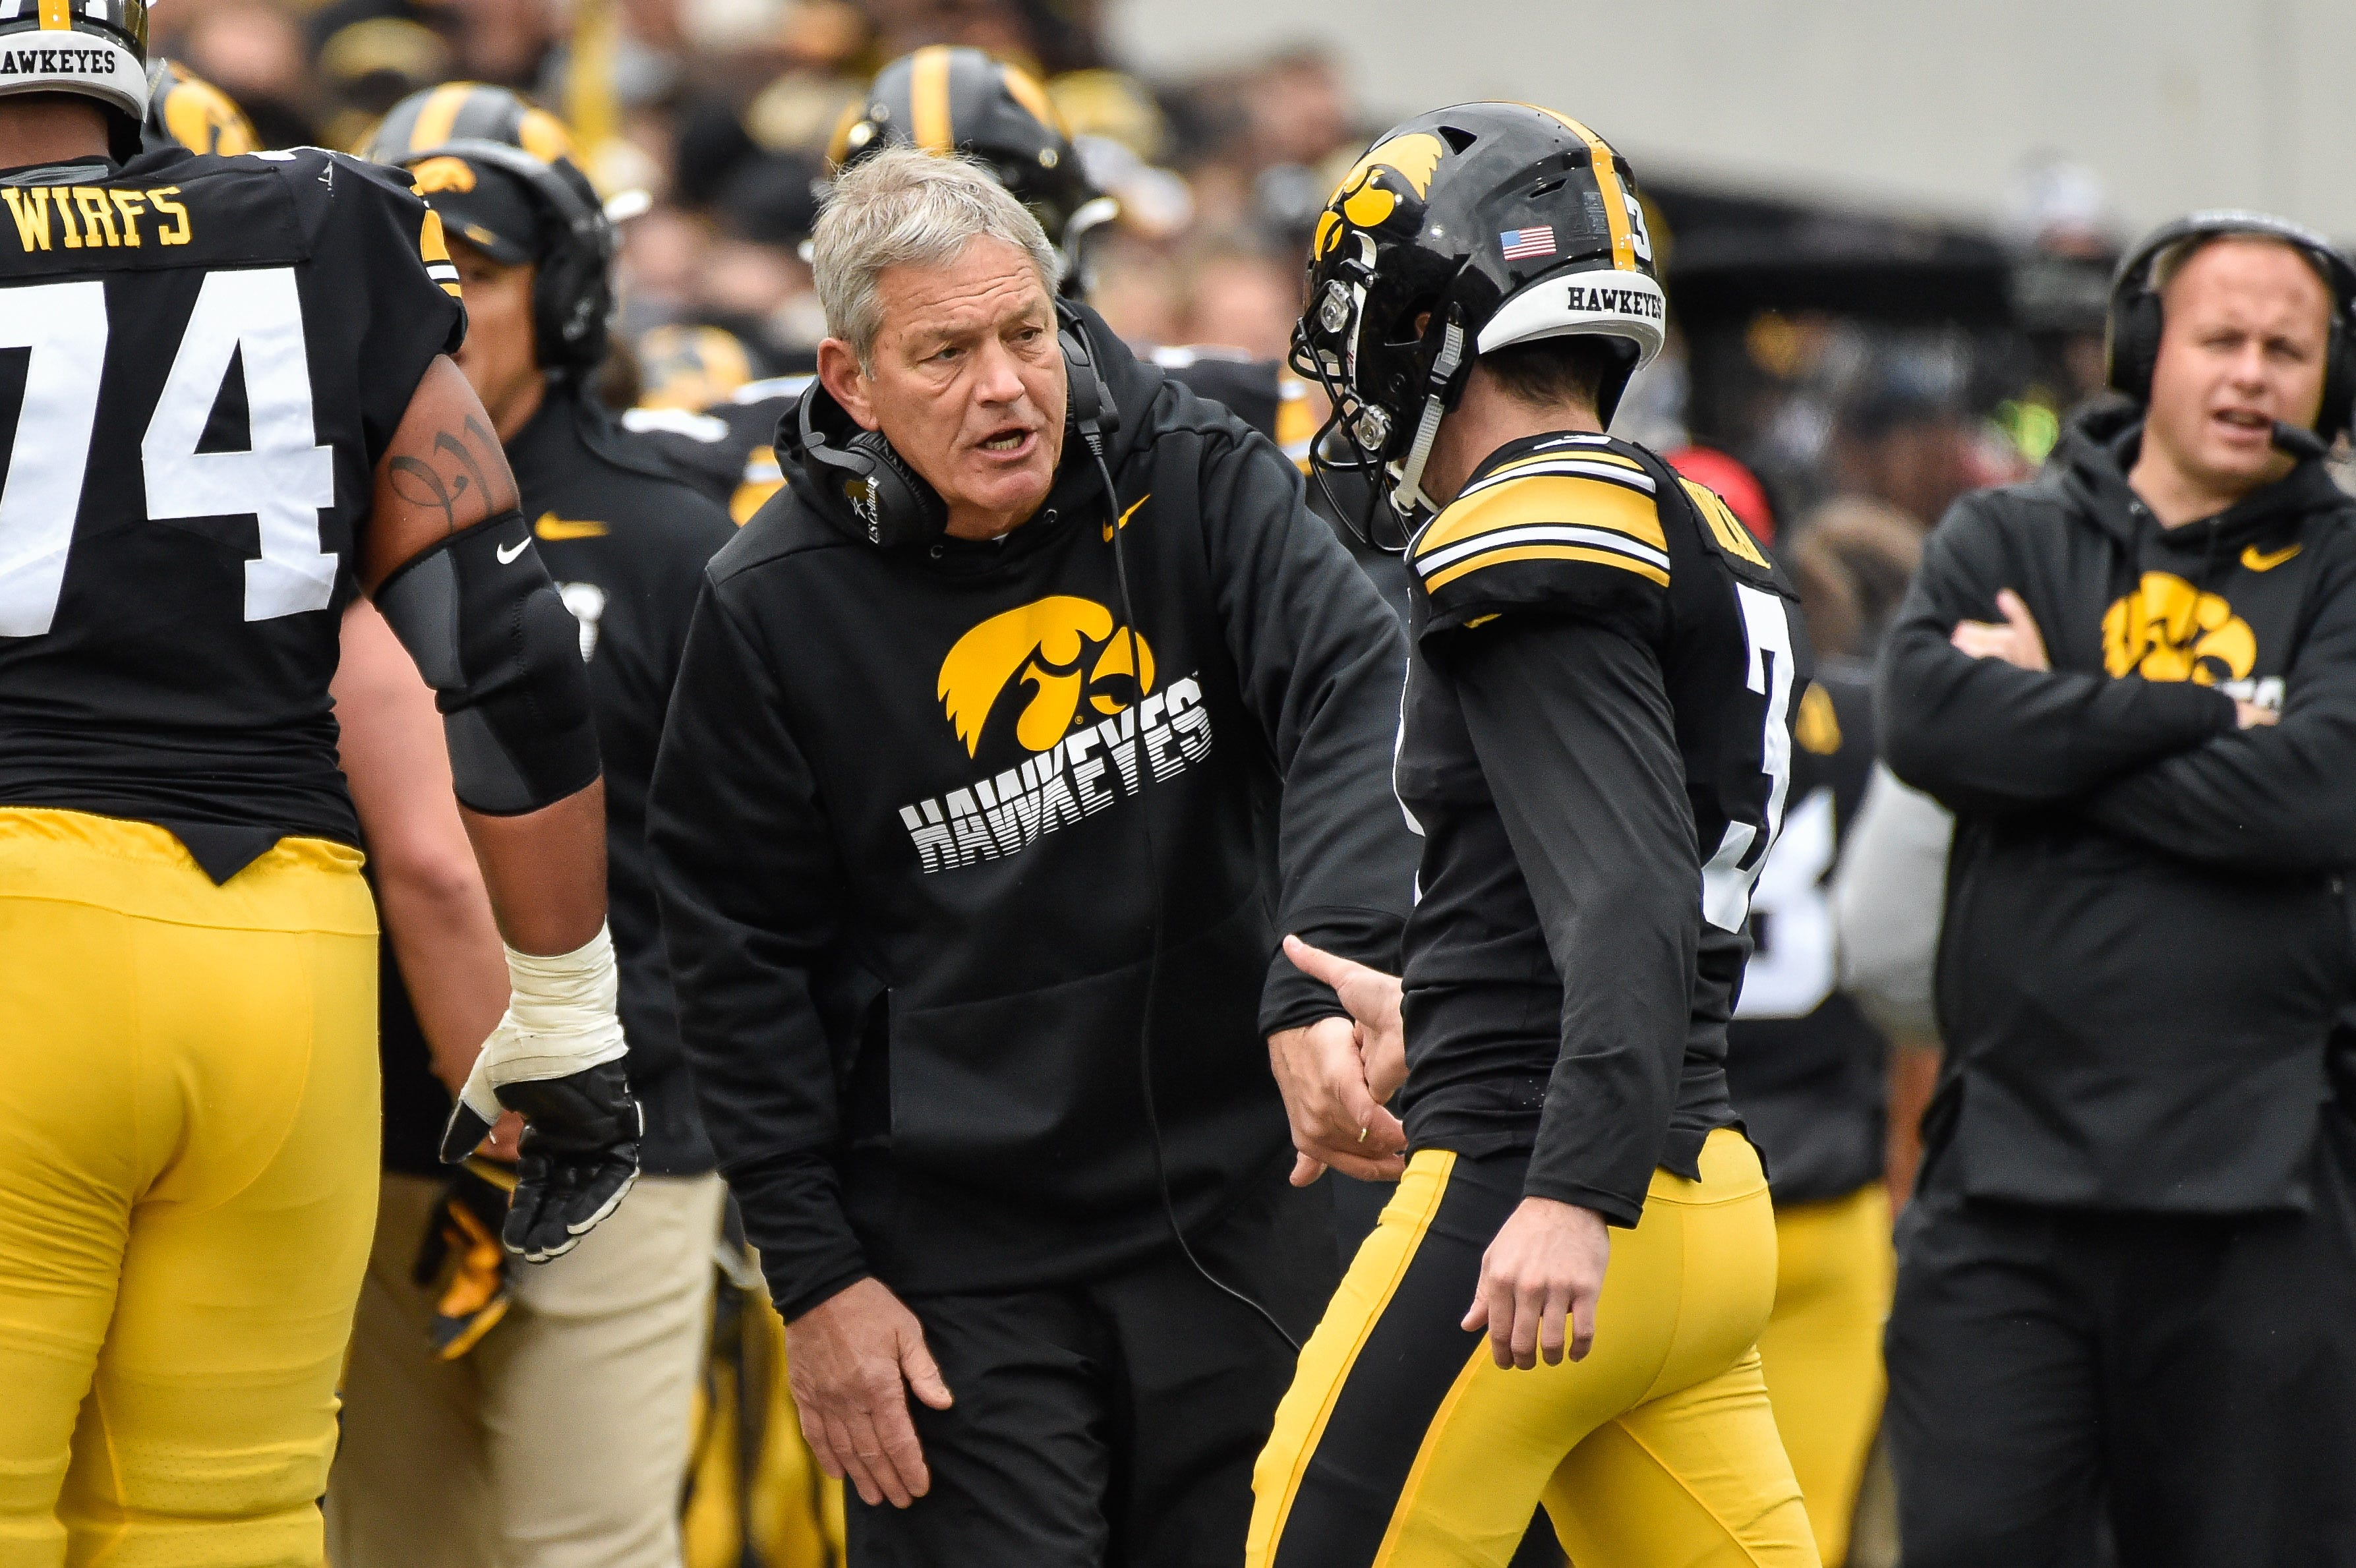 Threatened lawsuit from Black former players is pivotal moment for Iowa football, experts say, with no easy way out